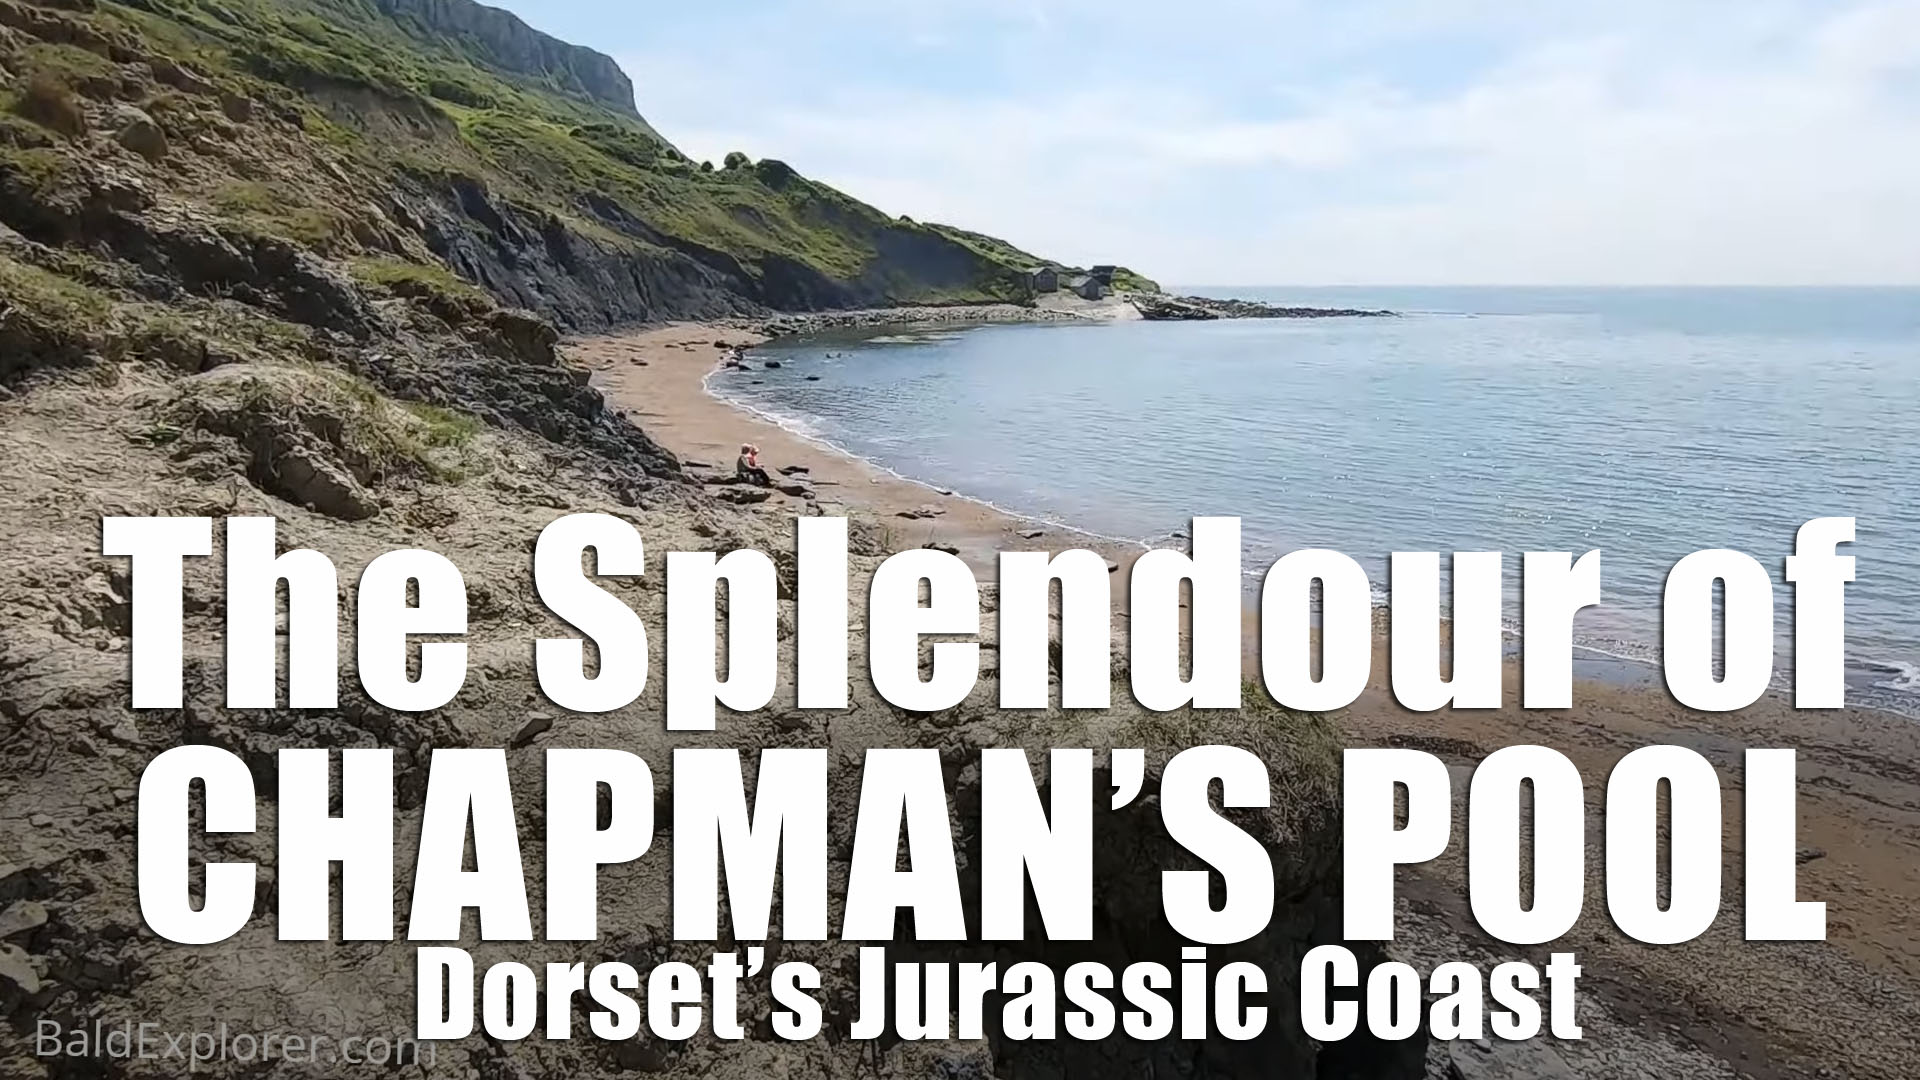 Dorset's Jurassic Coast - a scramble down to Chapman's Pool